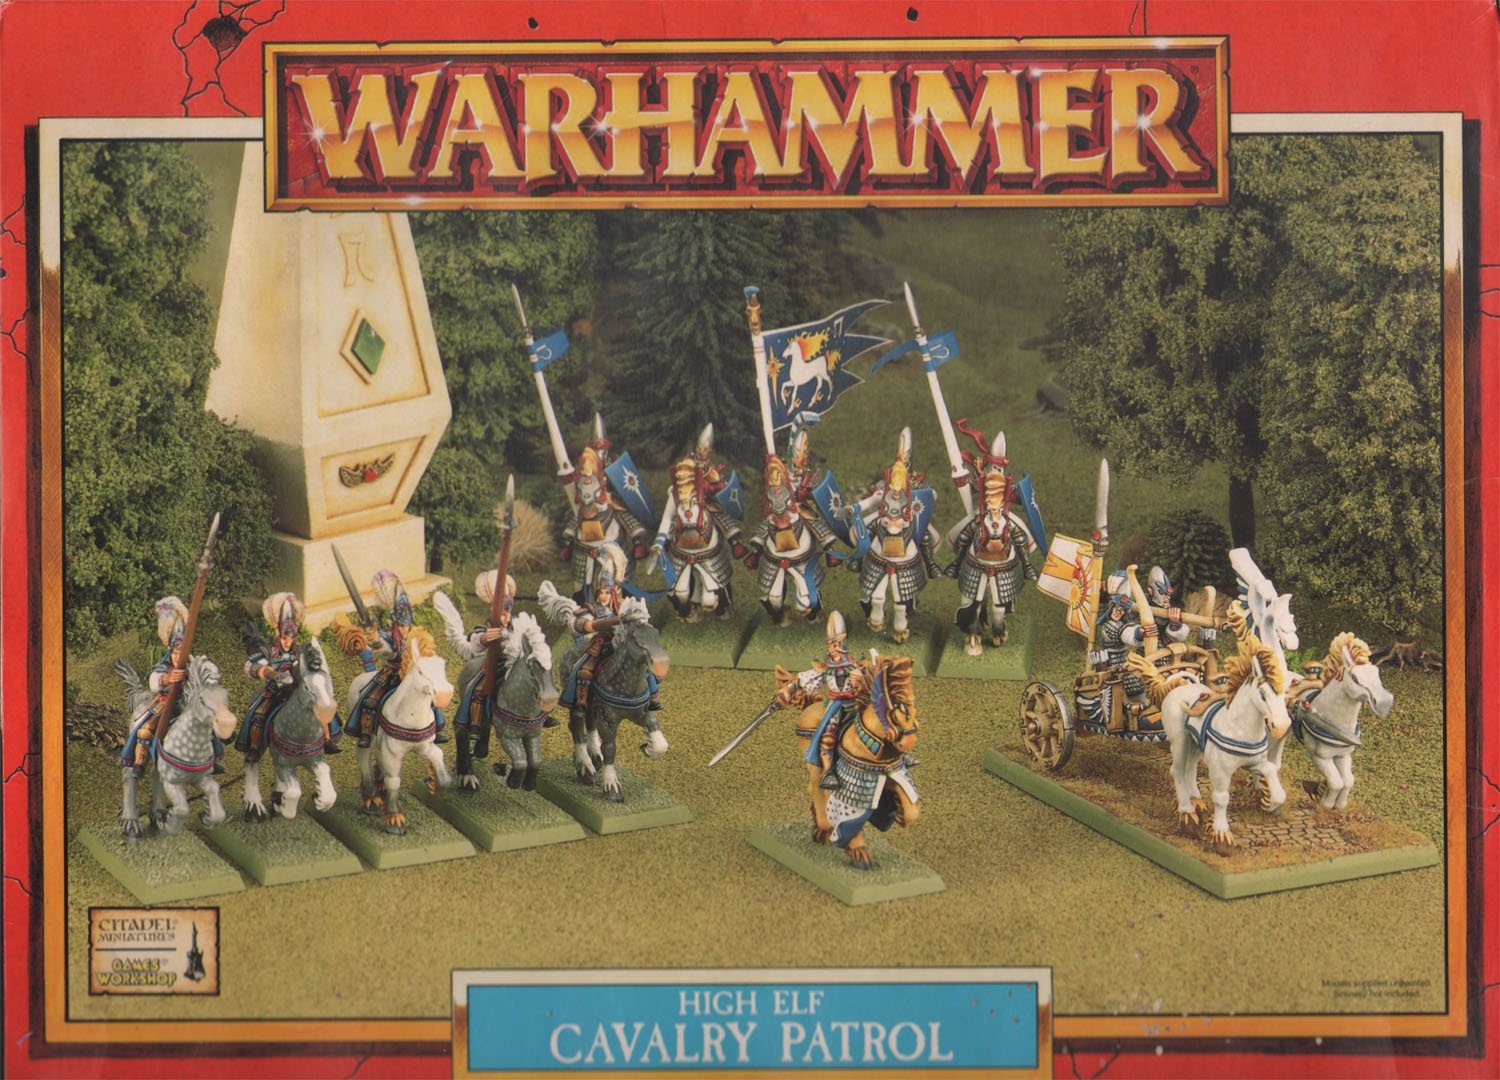 warhammer_high_elf_cavalry_patrol